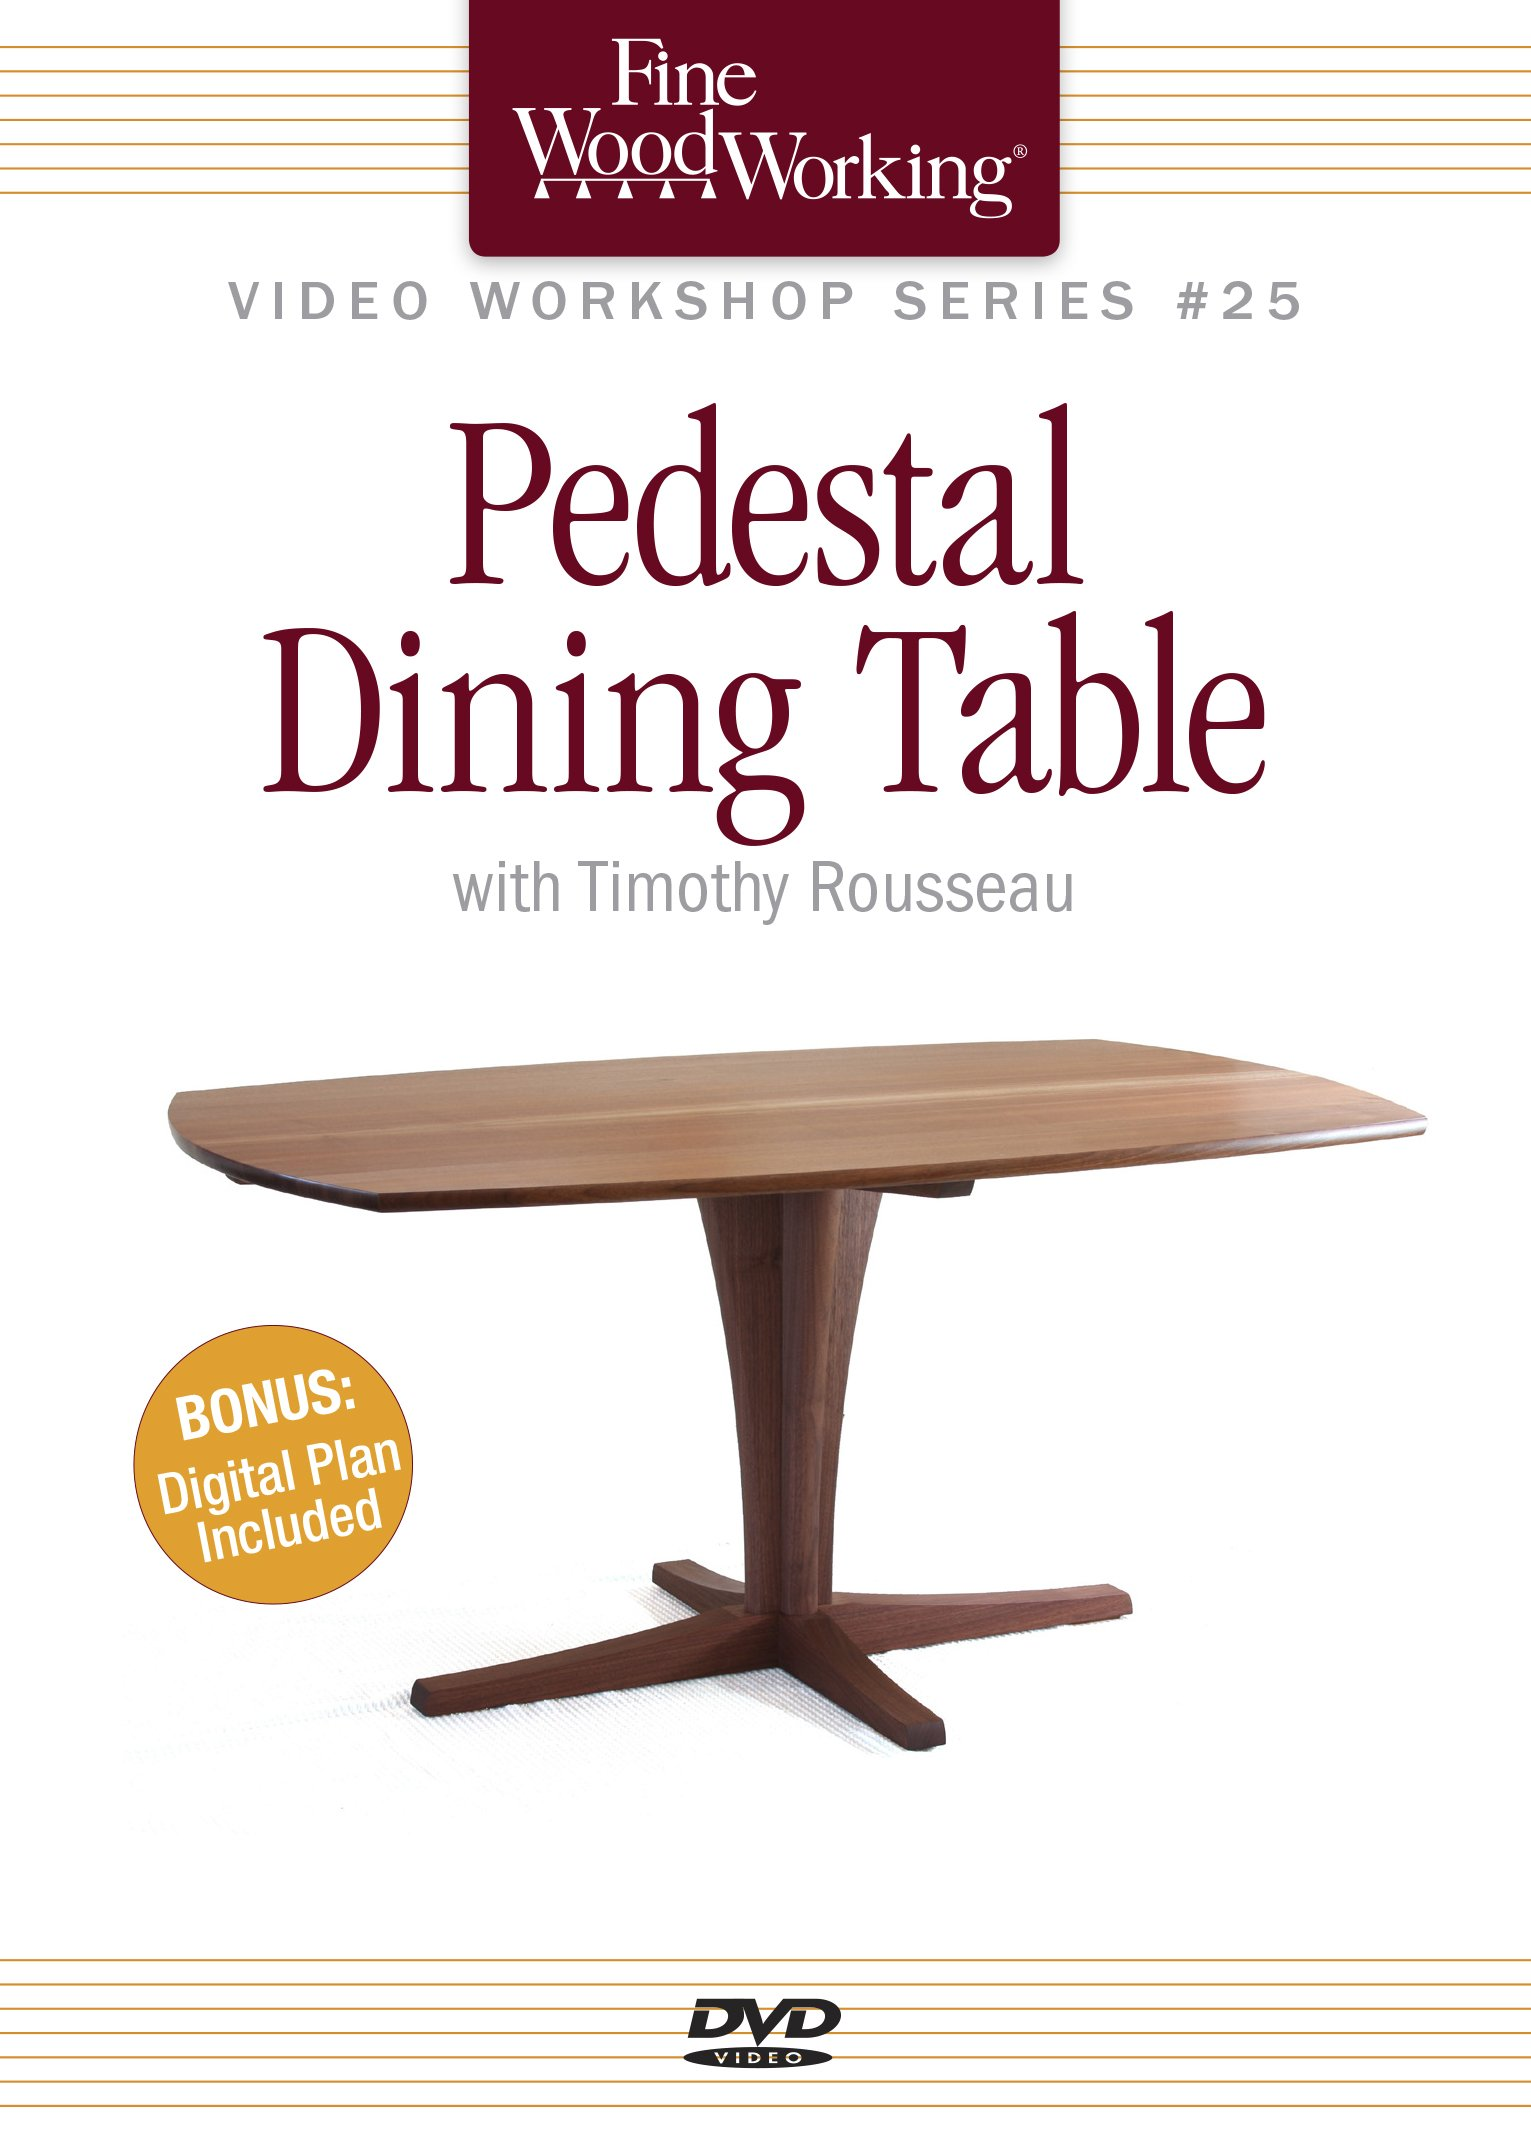 Fine Woodworking Video Workshop Series - Pedestal Dining Table by Taunton Press